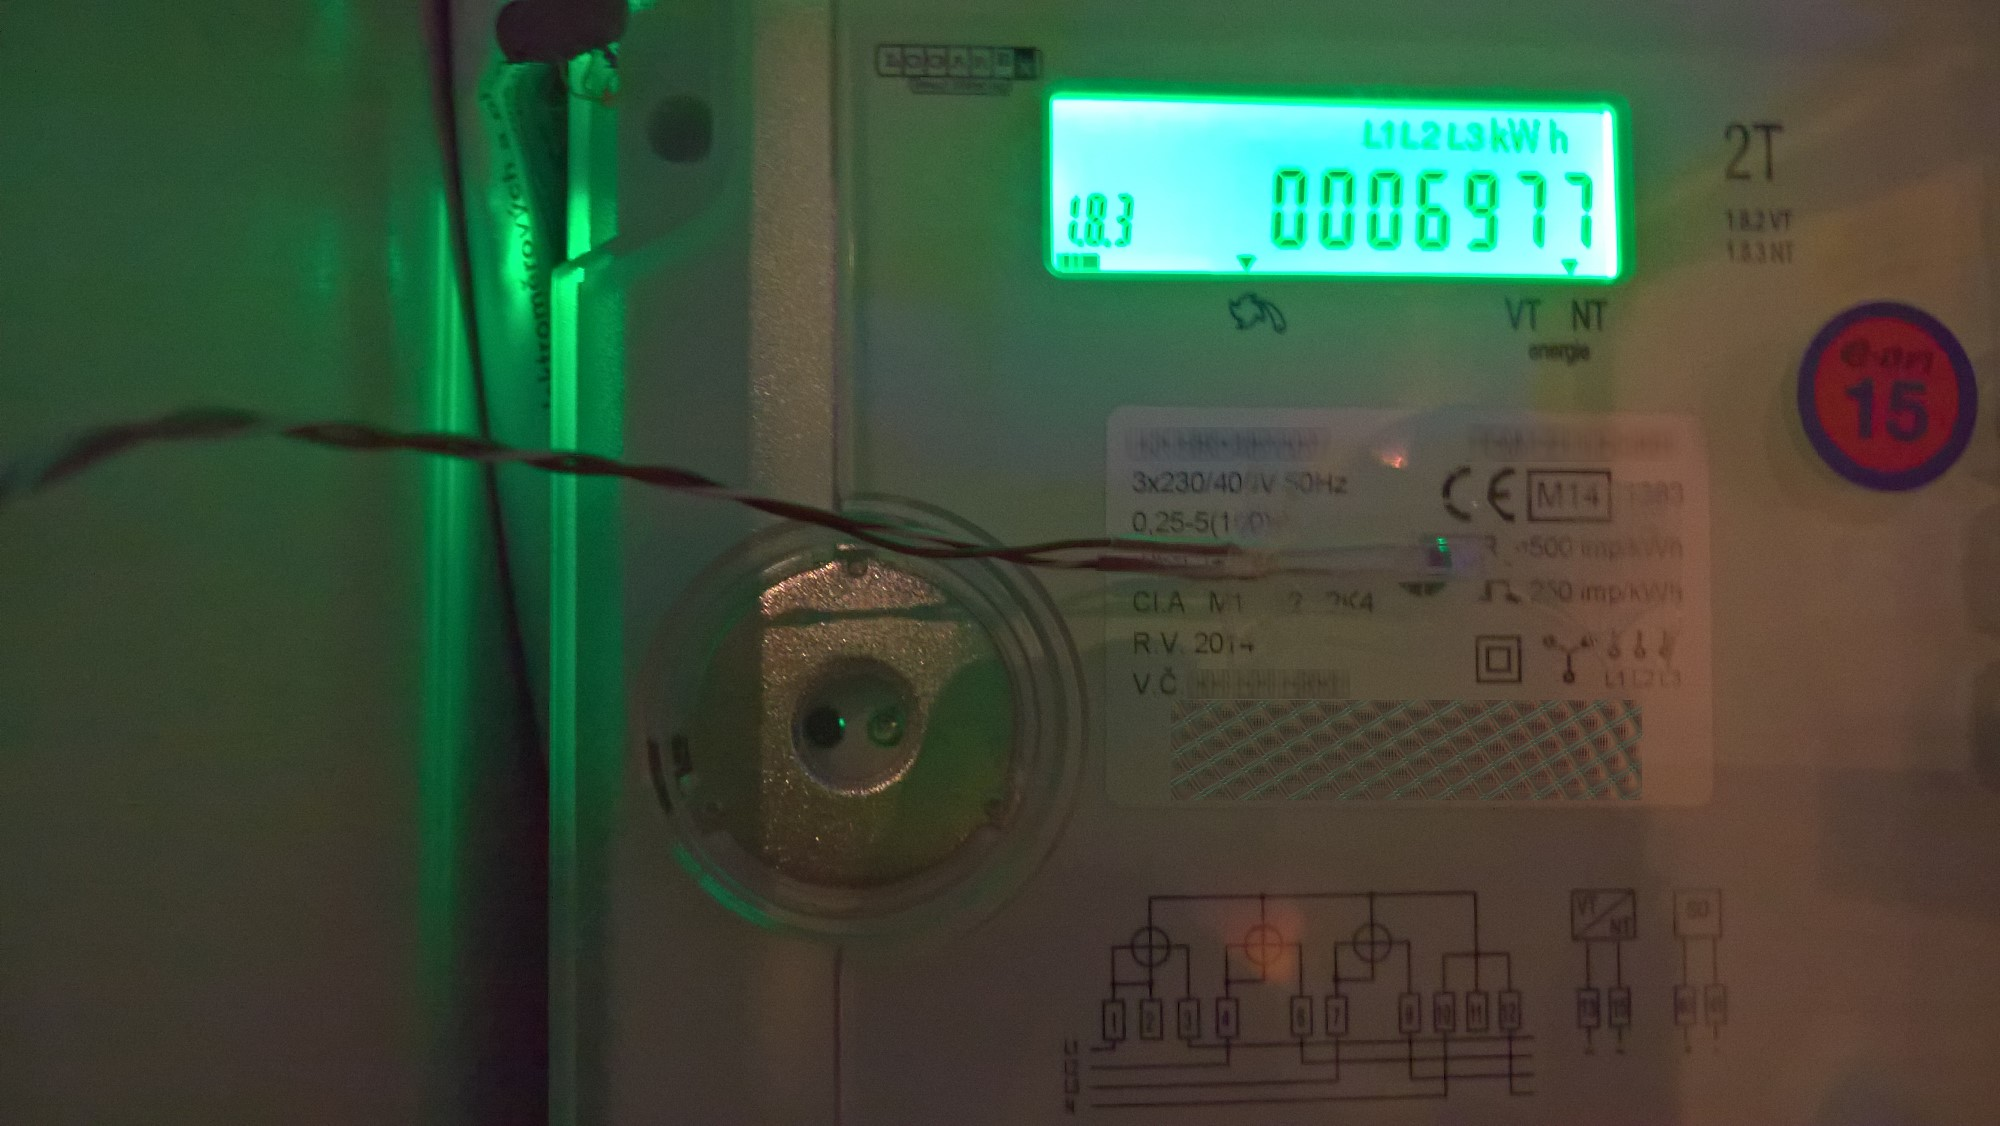 Connecting your electricity meter to Loxone